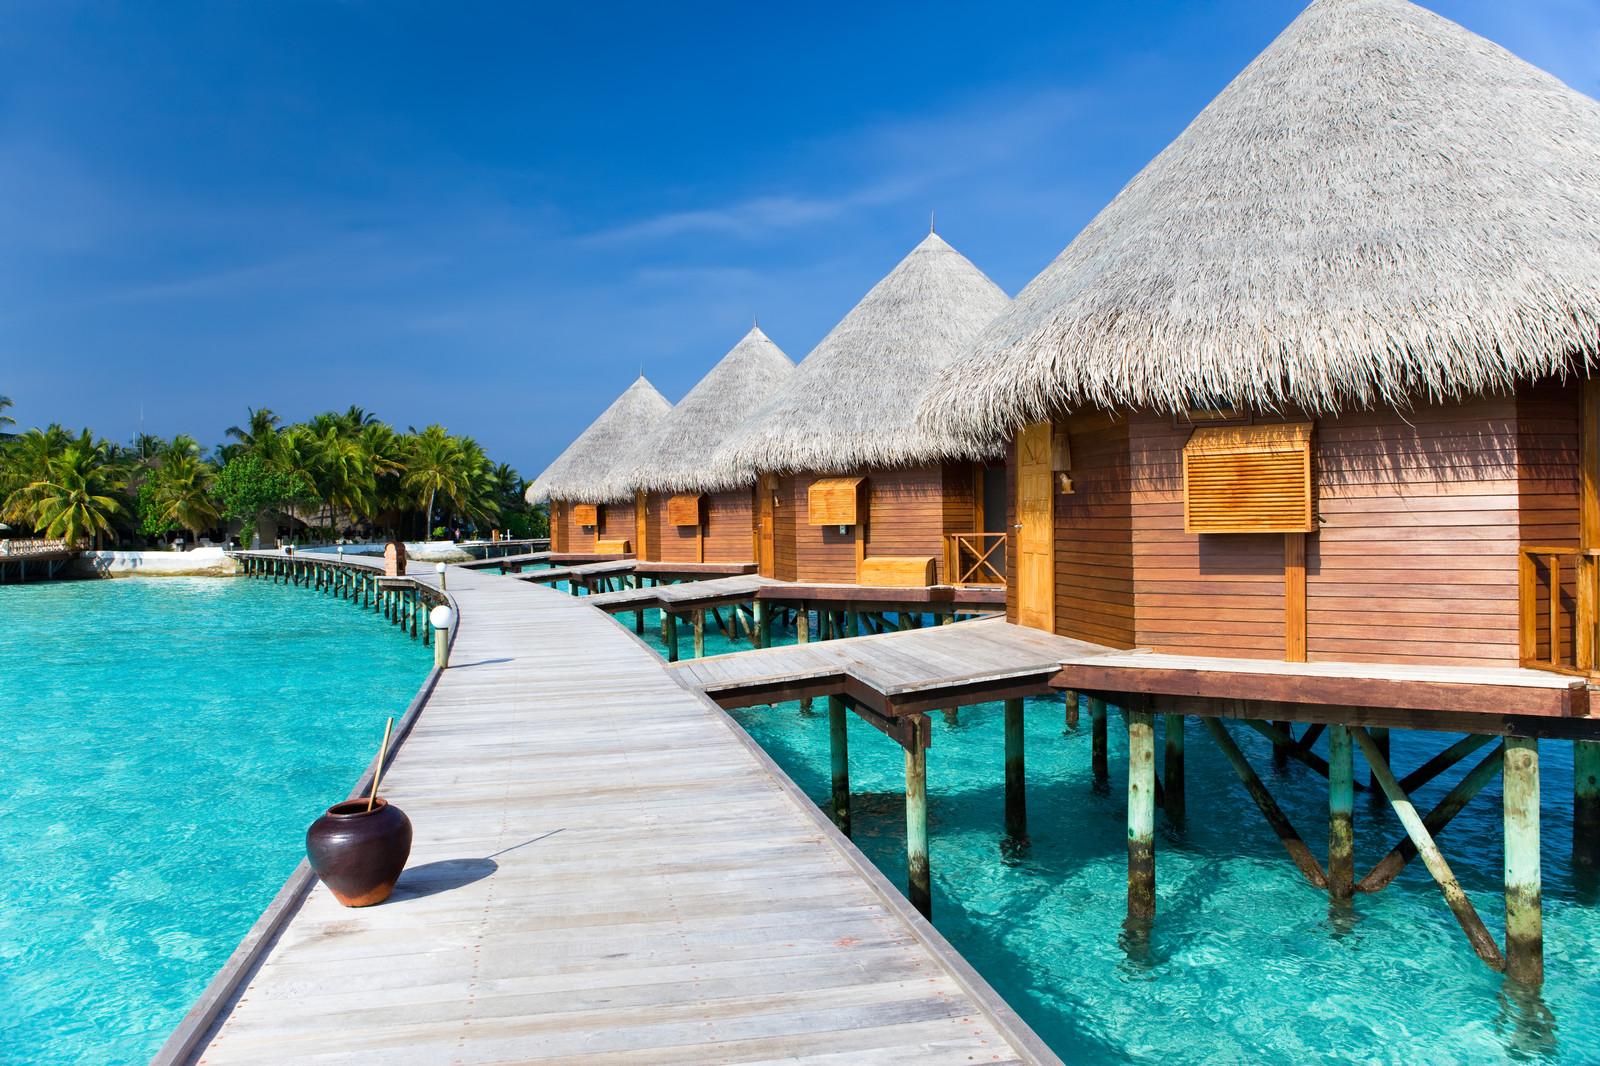 Extremism in paradise, luxury lodging in the Islamic Maldives on Mallory on Travel, adventure, adventure travel, photography canstockphoto7514111